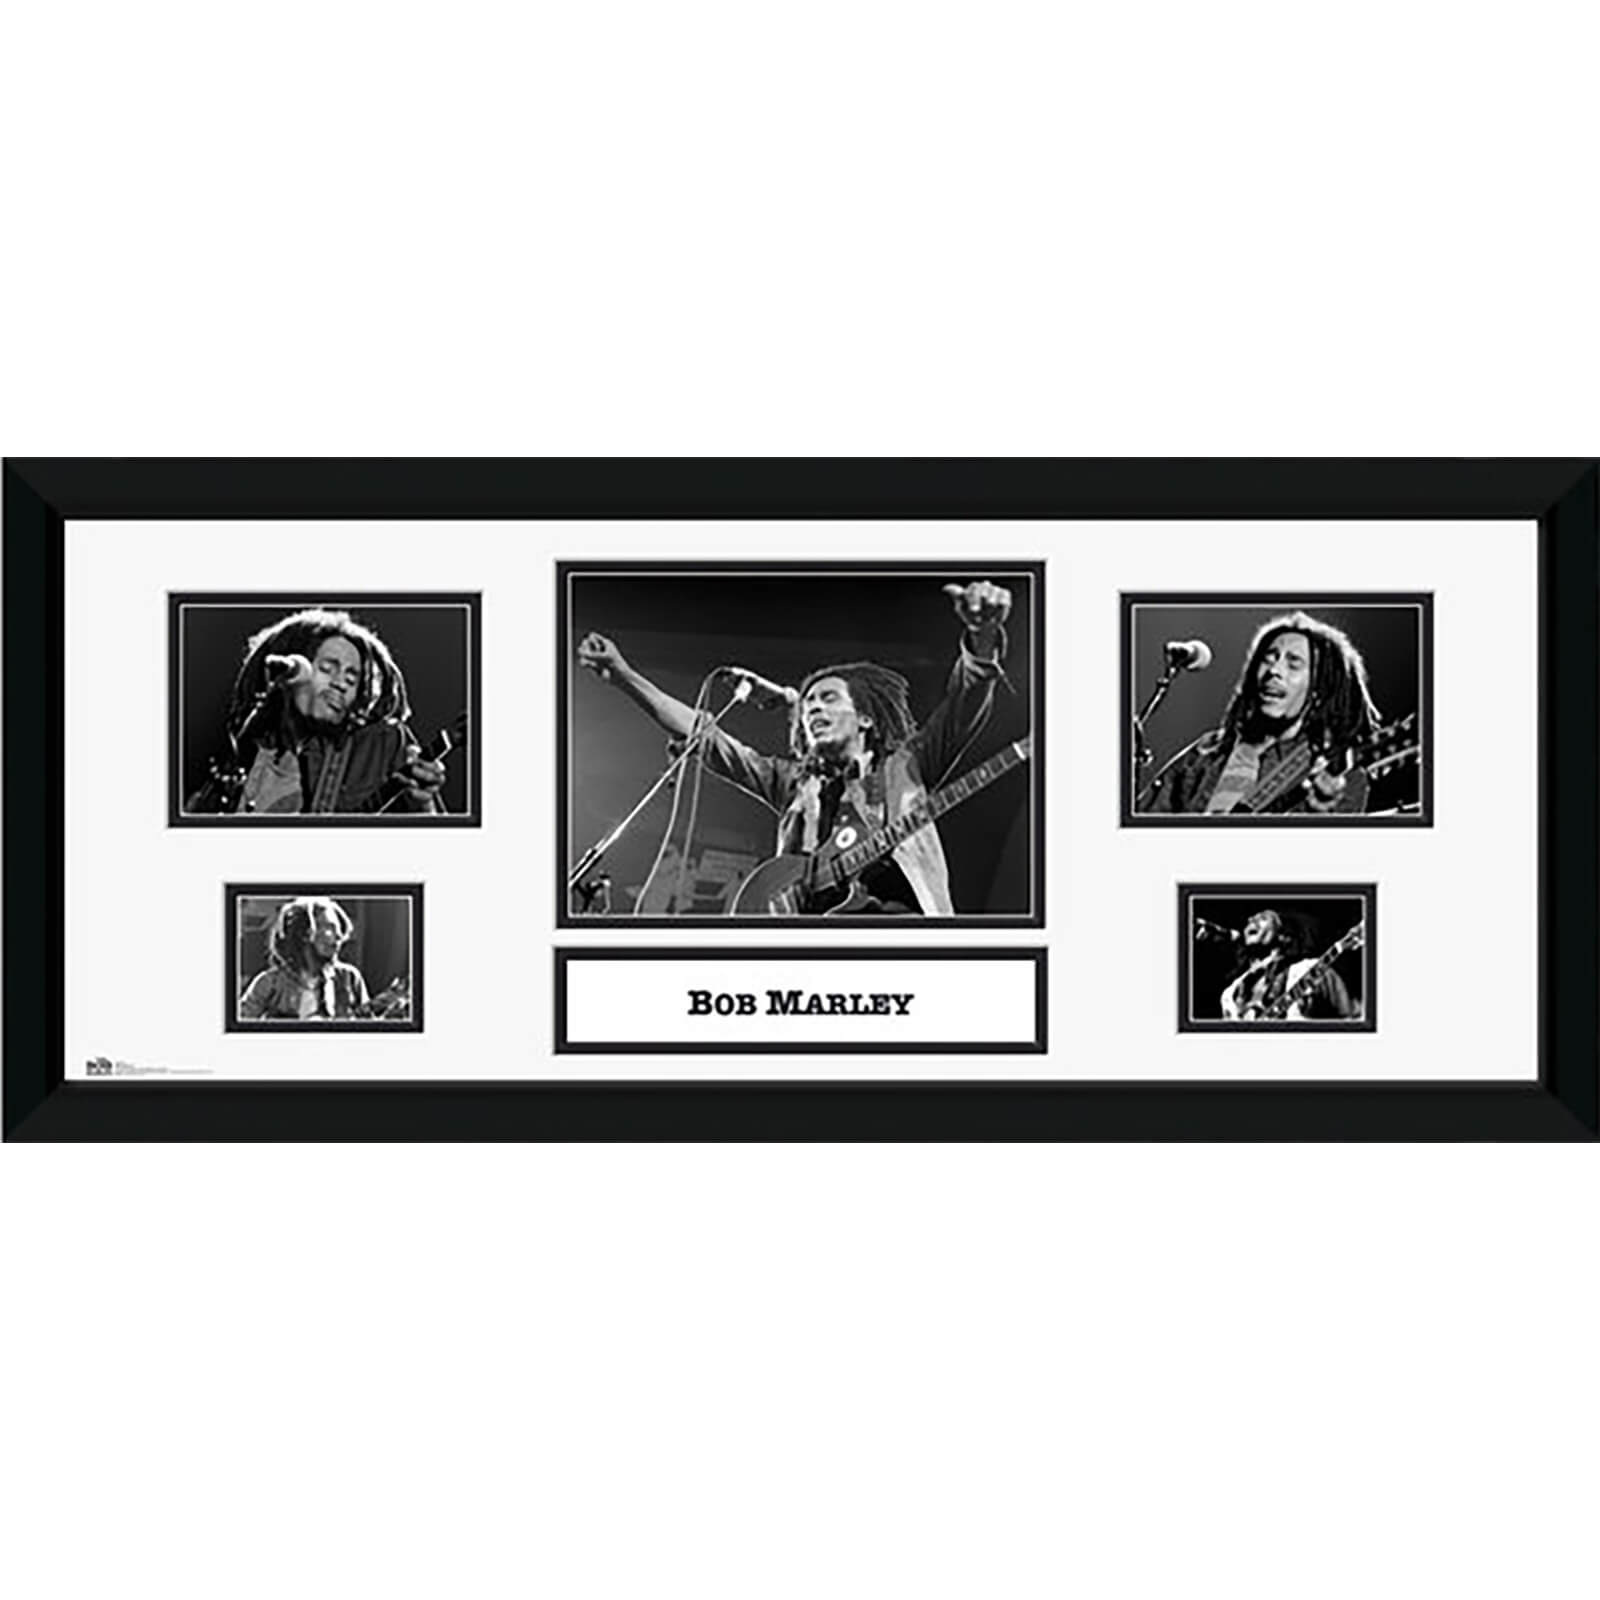 "Bob Marley Storyboard - 30"""" x 12"""" Framed Photographic"